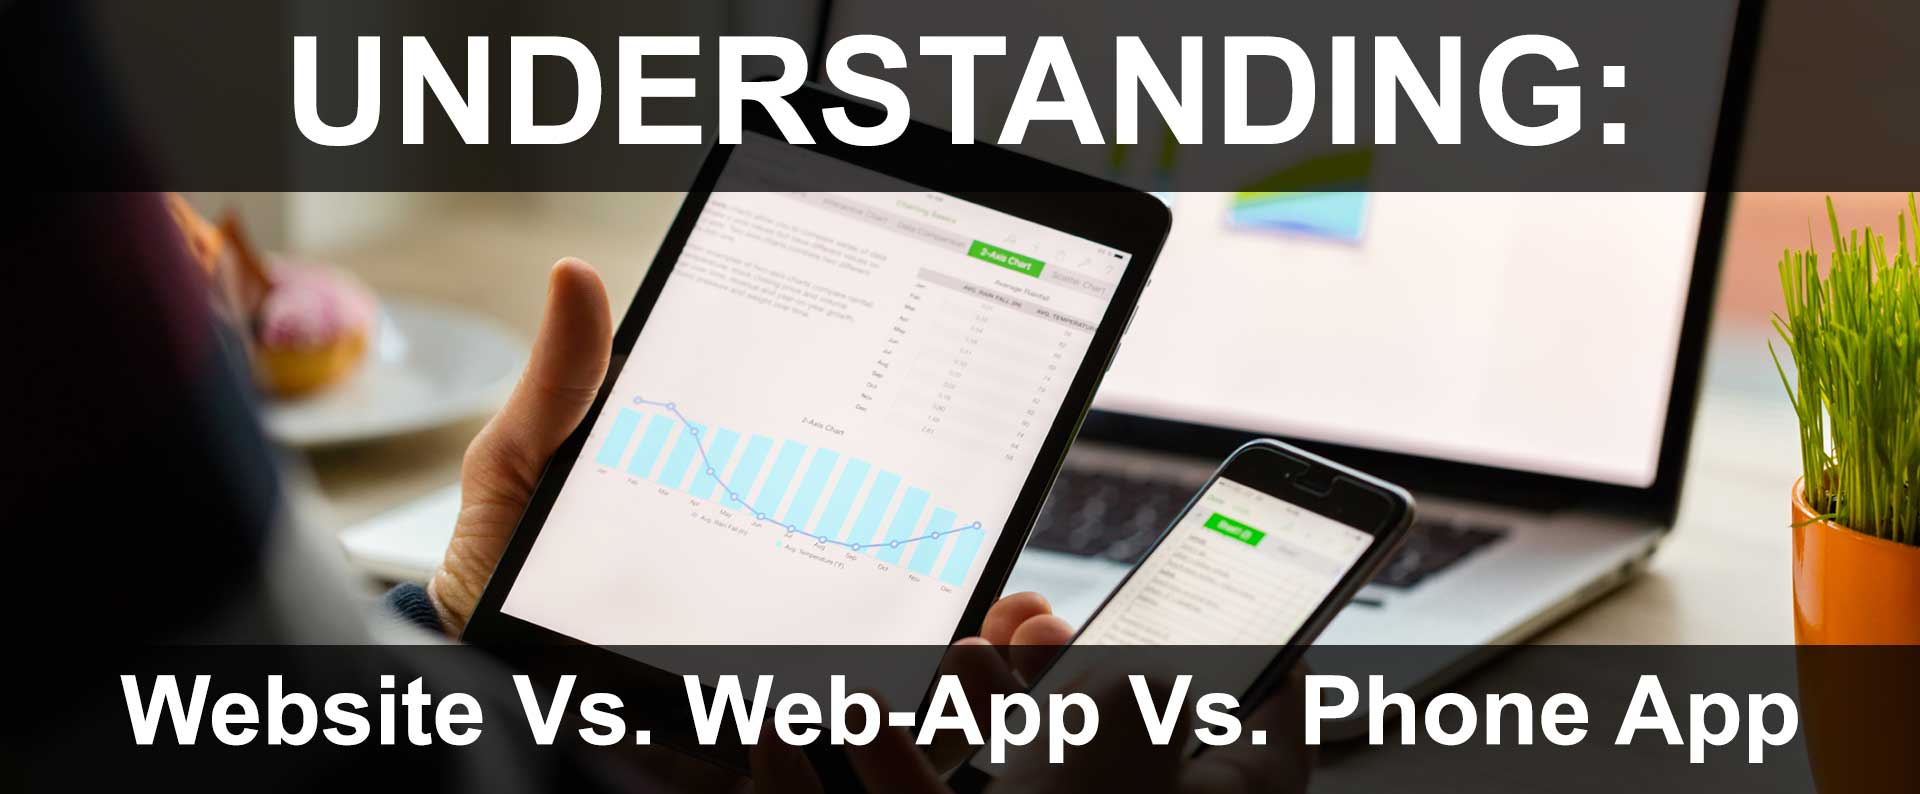 Understanding Web 1.0 - 5.0 vs. App Technology & What It Means To You